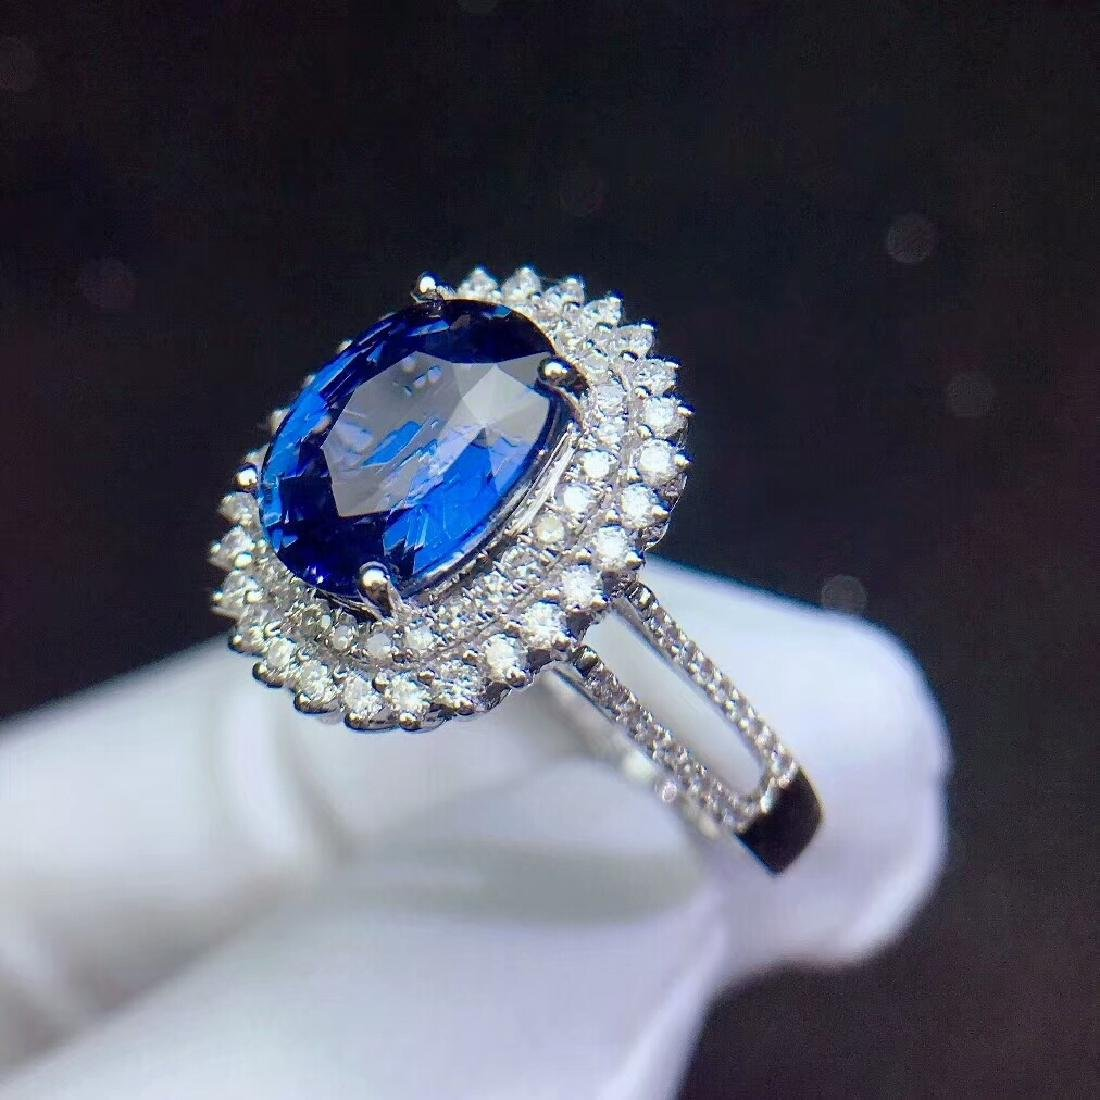 3.04ct Sapphire Ring in 18kt white Gold - 5